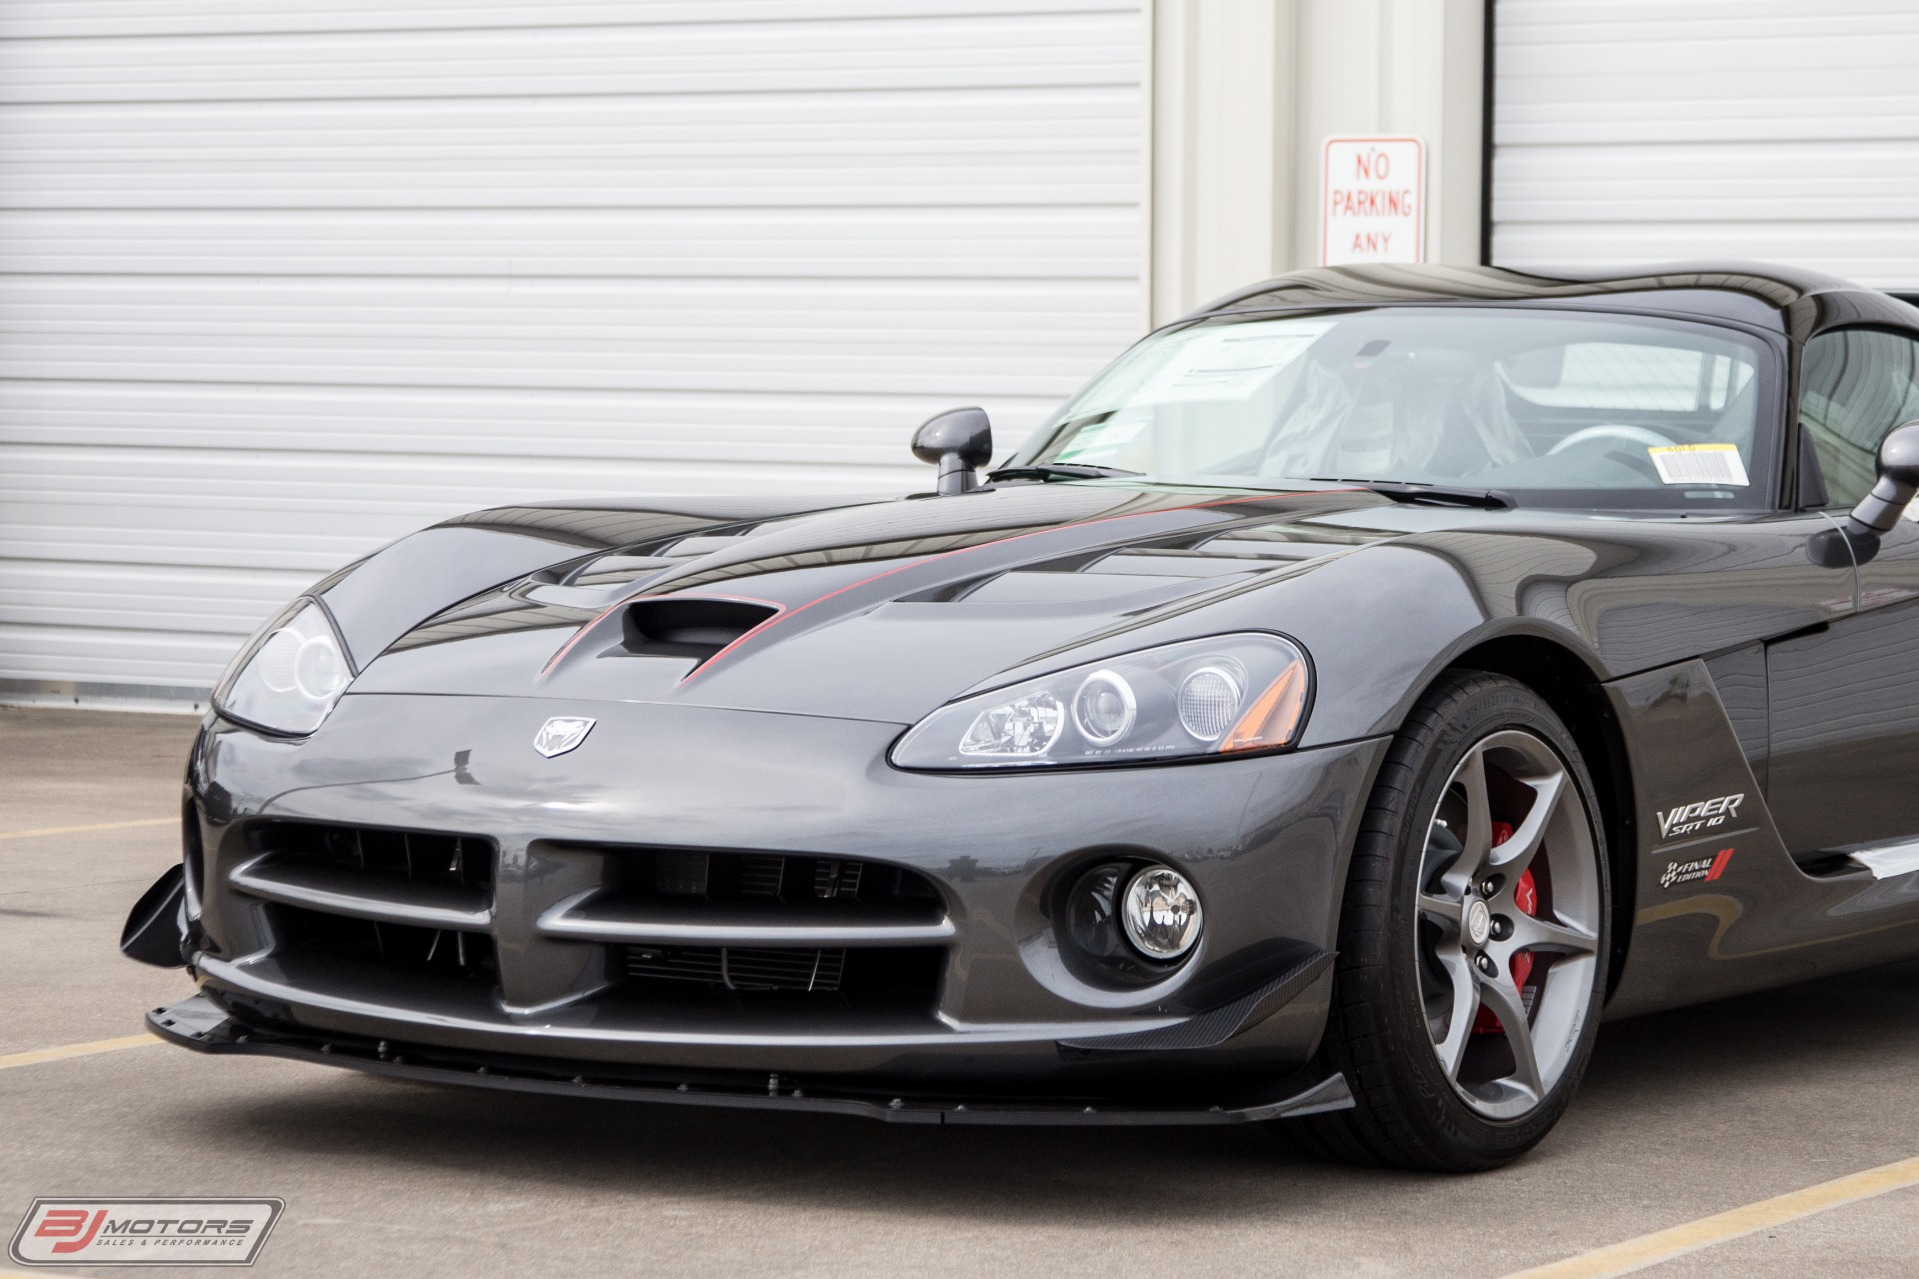 Used-2010-Dodge-Viper-SRT-10-Final-Edition-Aero-Coupe-1-of-1